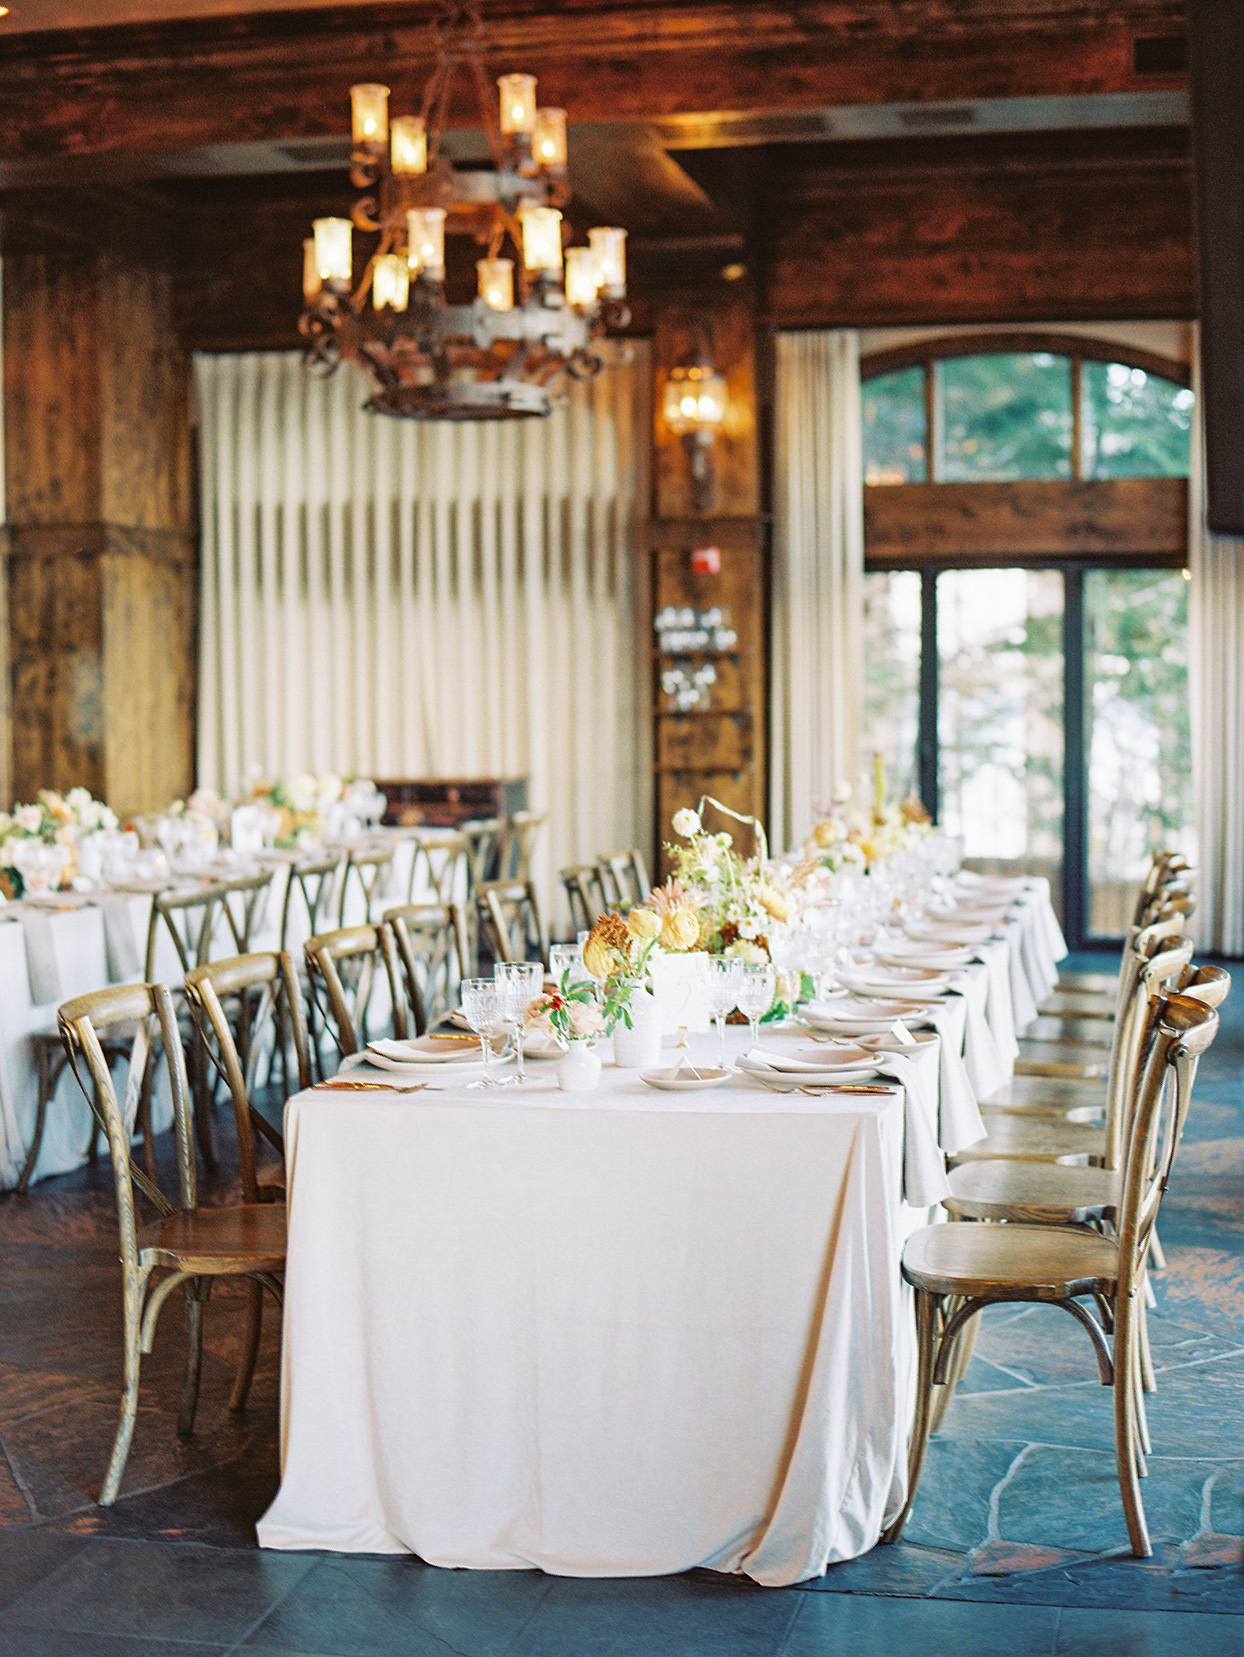 A Beautifully Neutral Reception Space